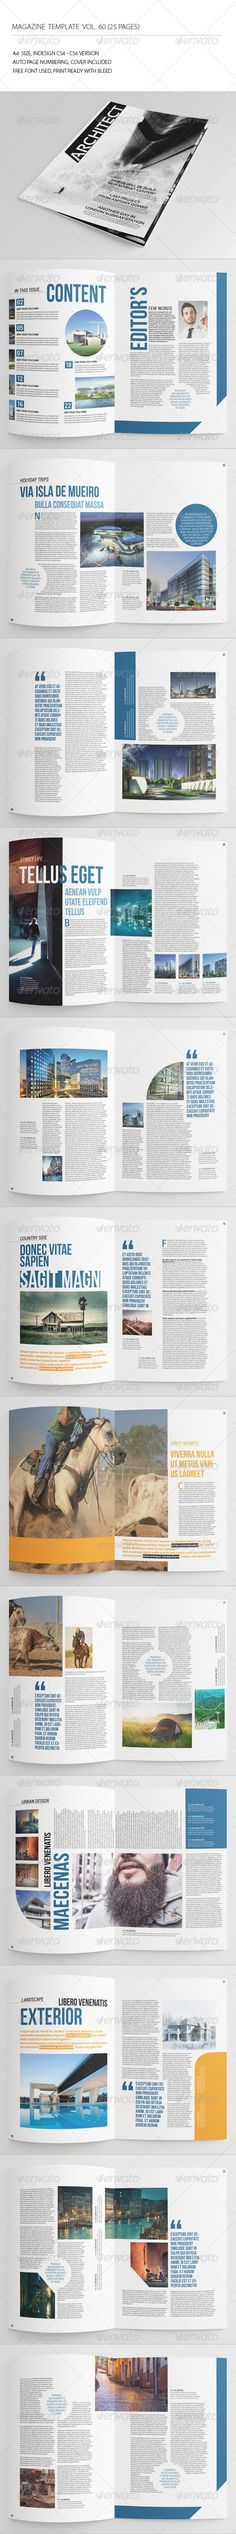 25 Pages Architecture Magazine Vol60 - #Magazines #Print #Templates Download here: https://graphicriver.net/item/25-pages-architecture-magazine-vol60/7845872?ref=alena994